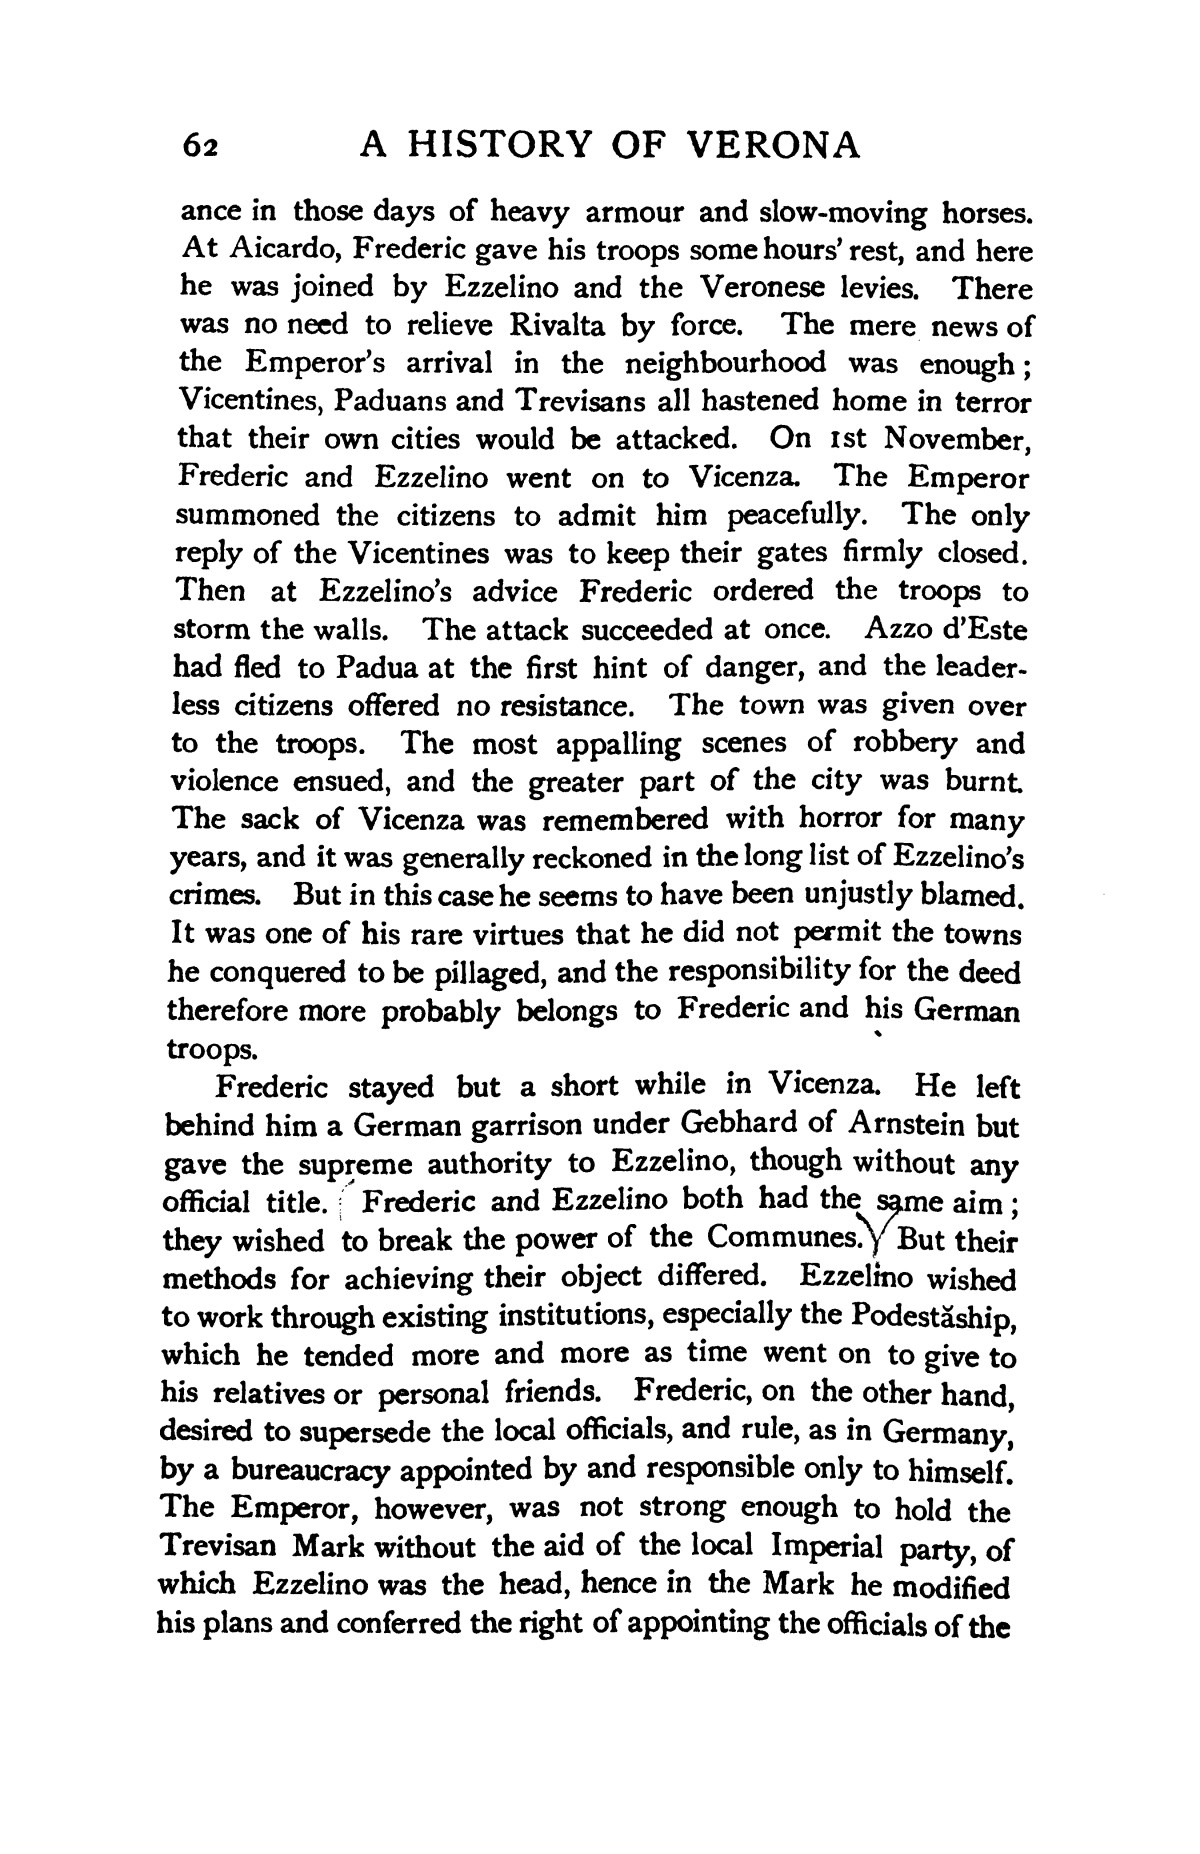 A history of Verona, by A. M. Allen.  Edited by Edward Armstrong, with twenty illustrations and three maps.                                                                                                      [Sequence #]: 80 of 493